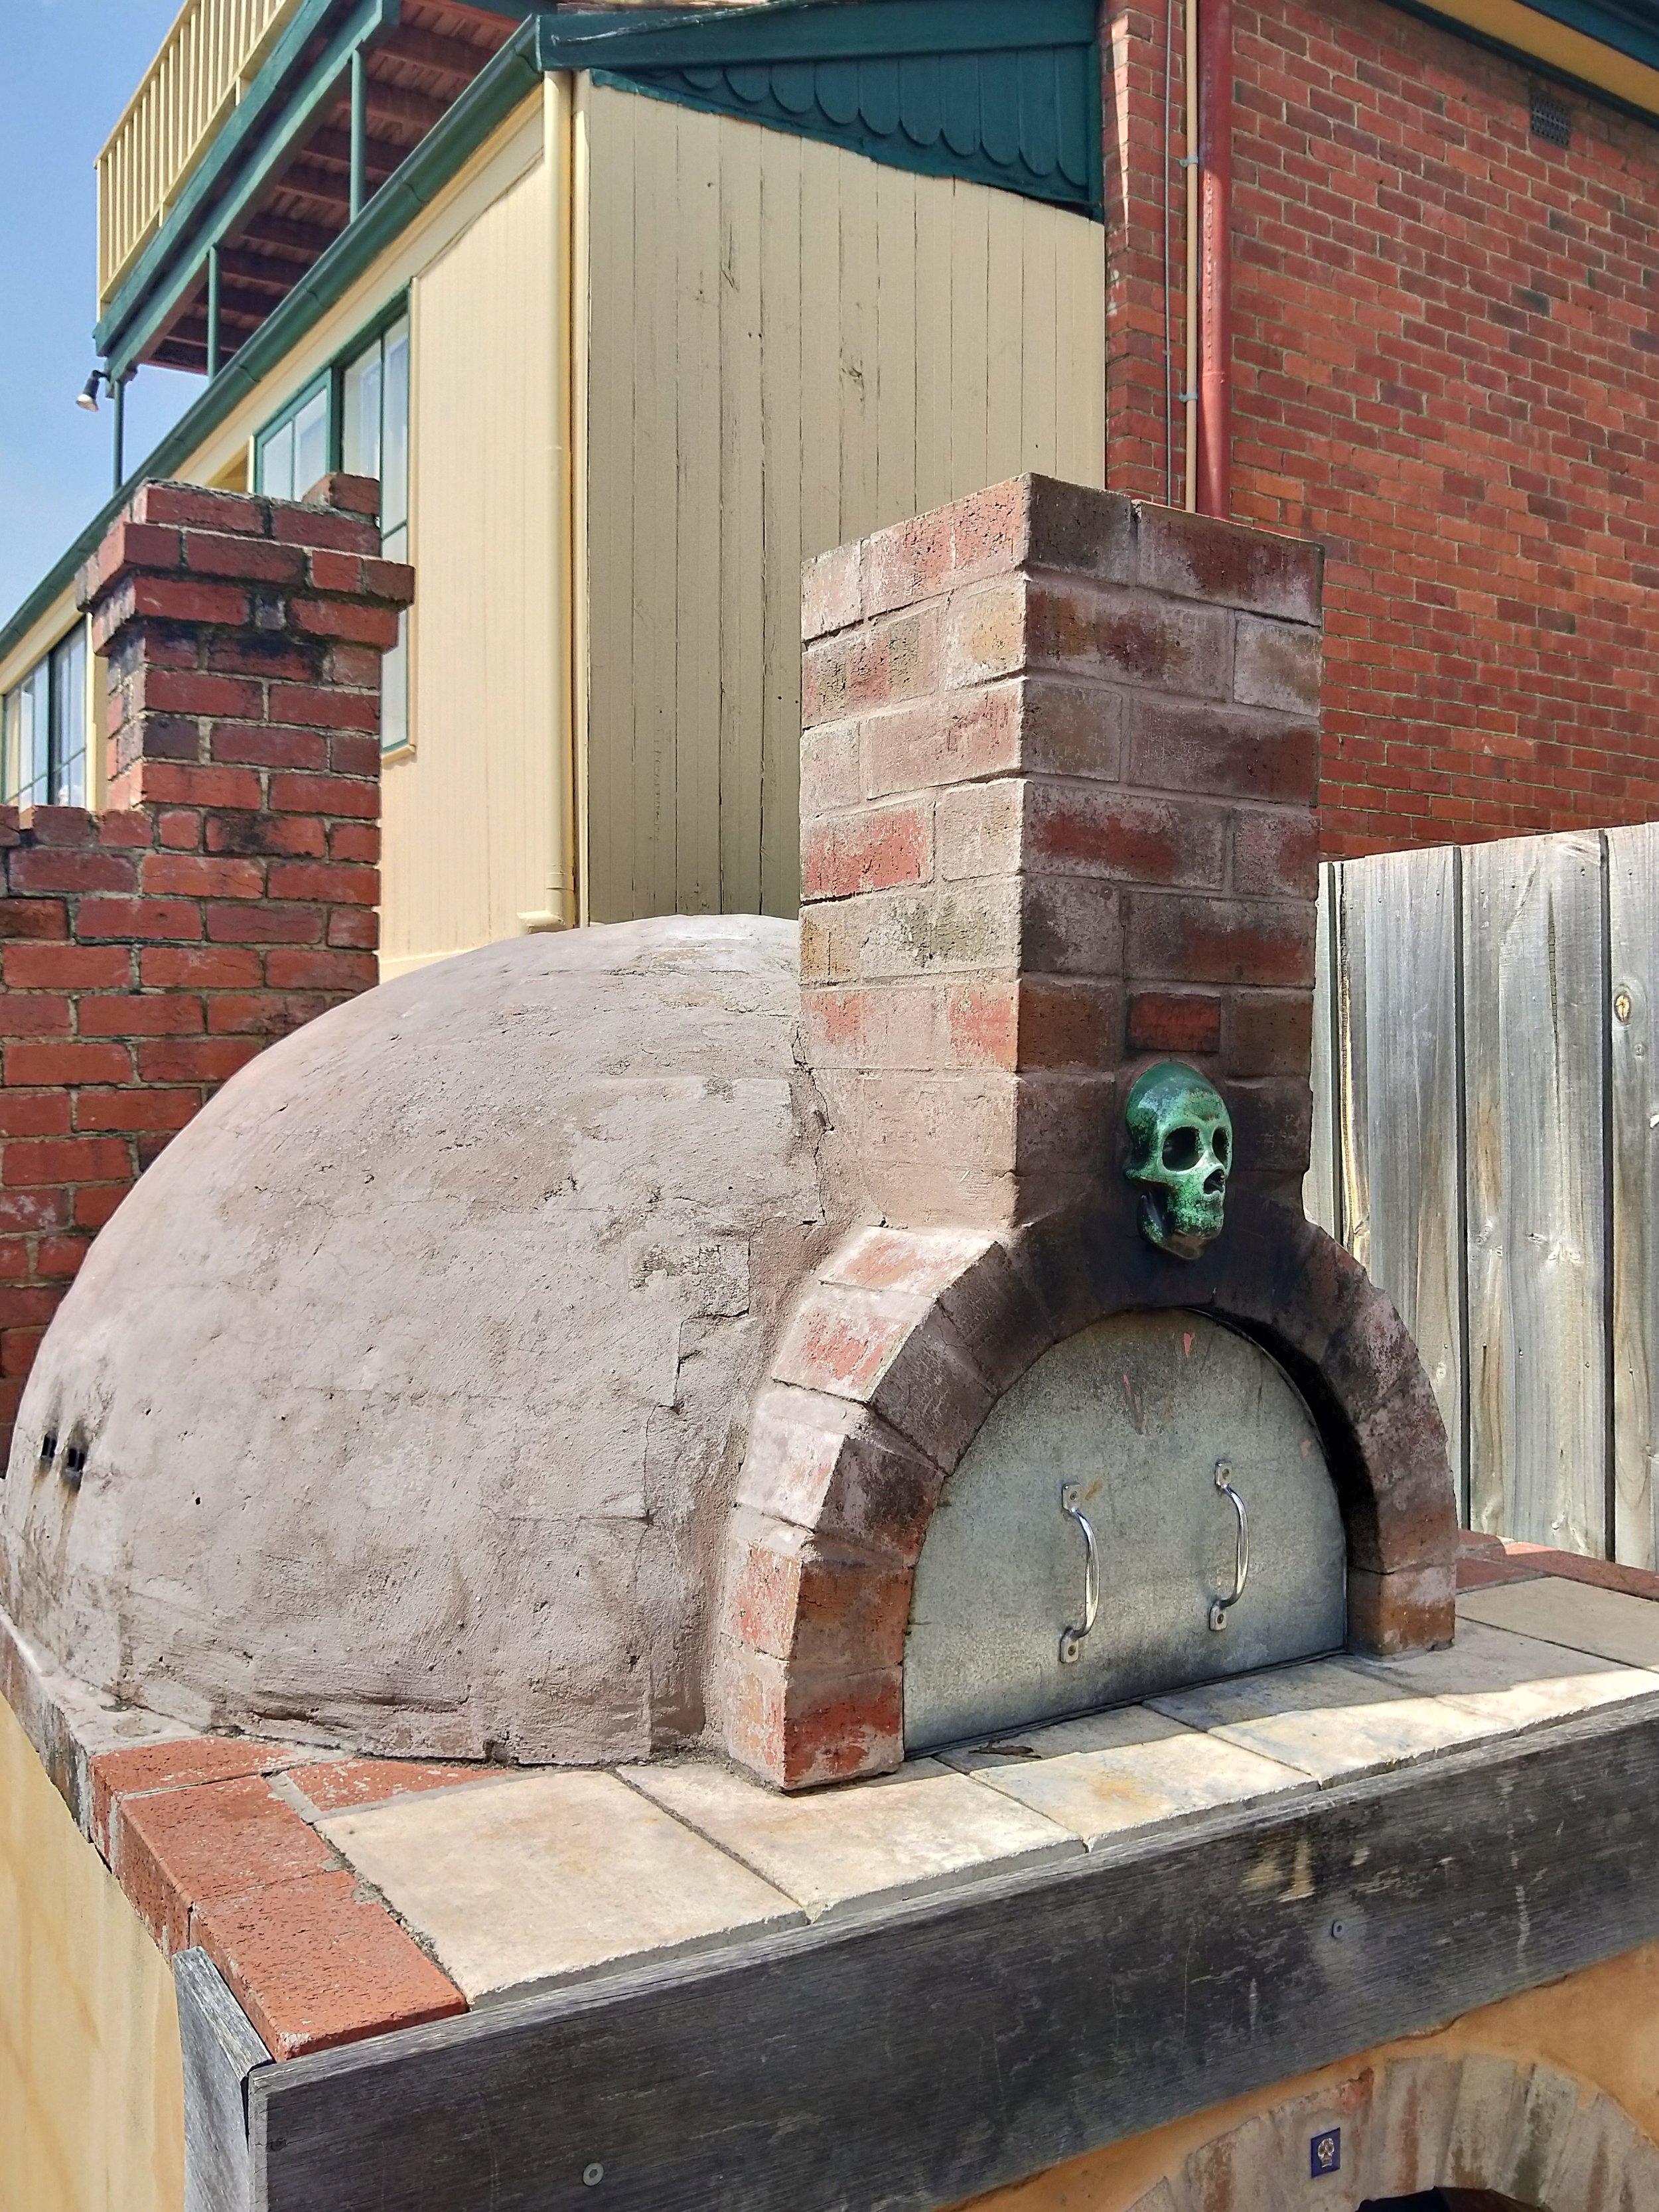 Pizza Oven of Death